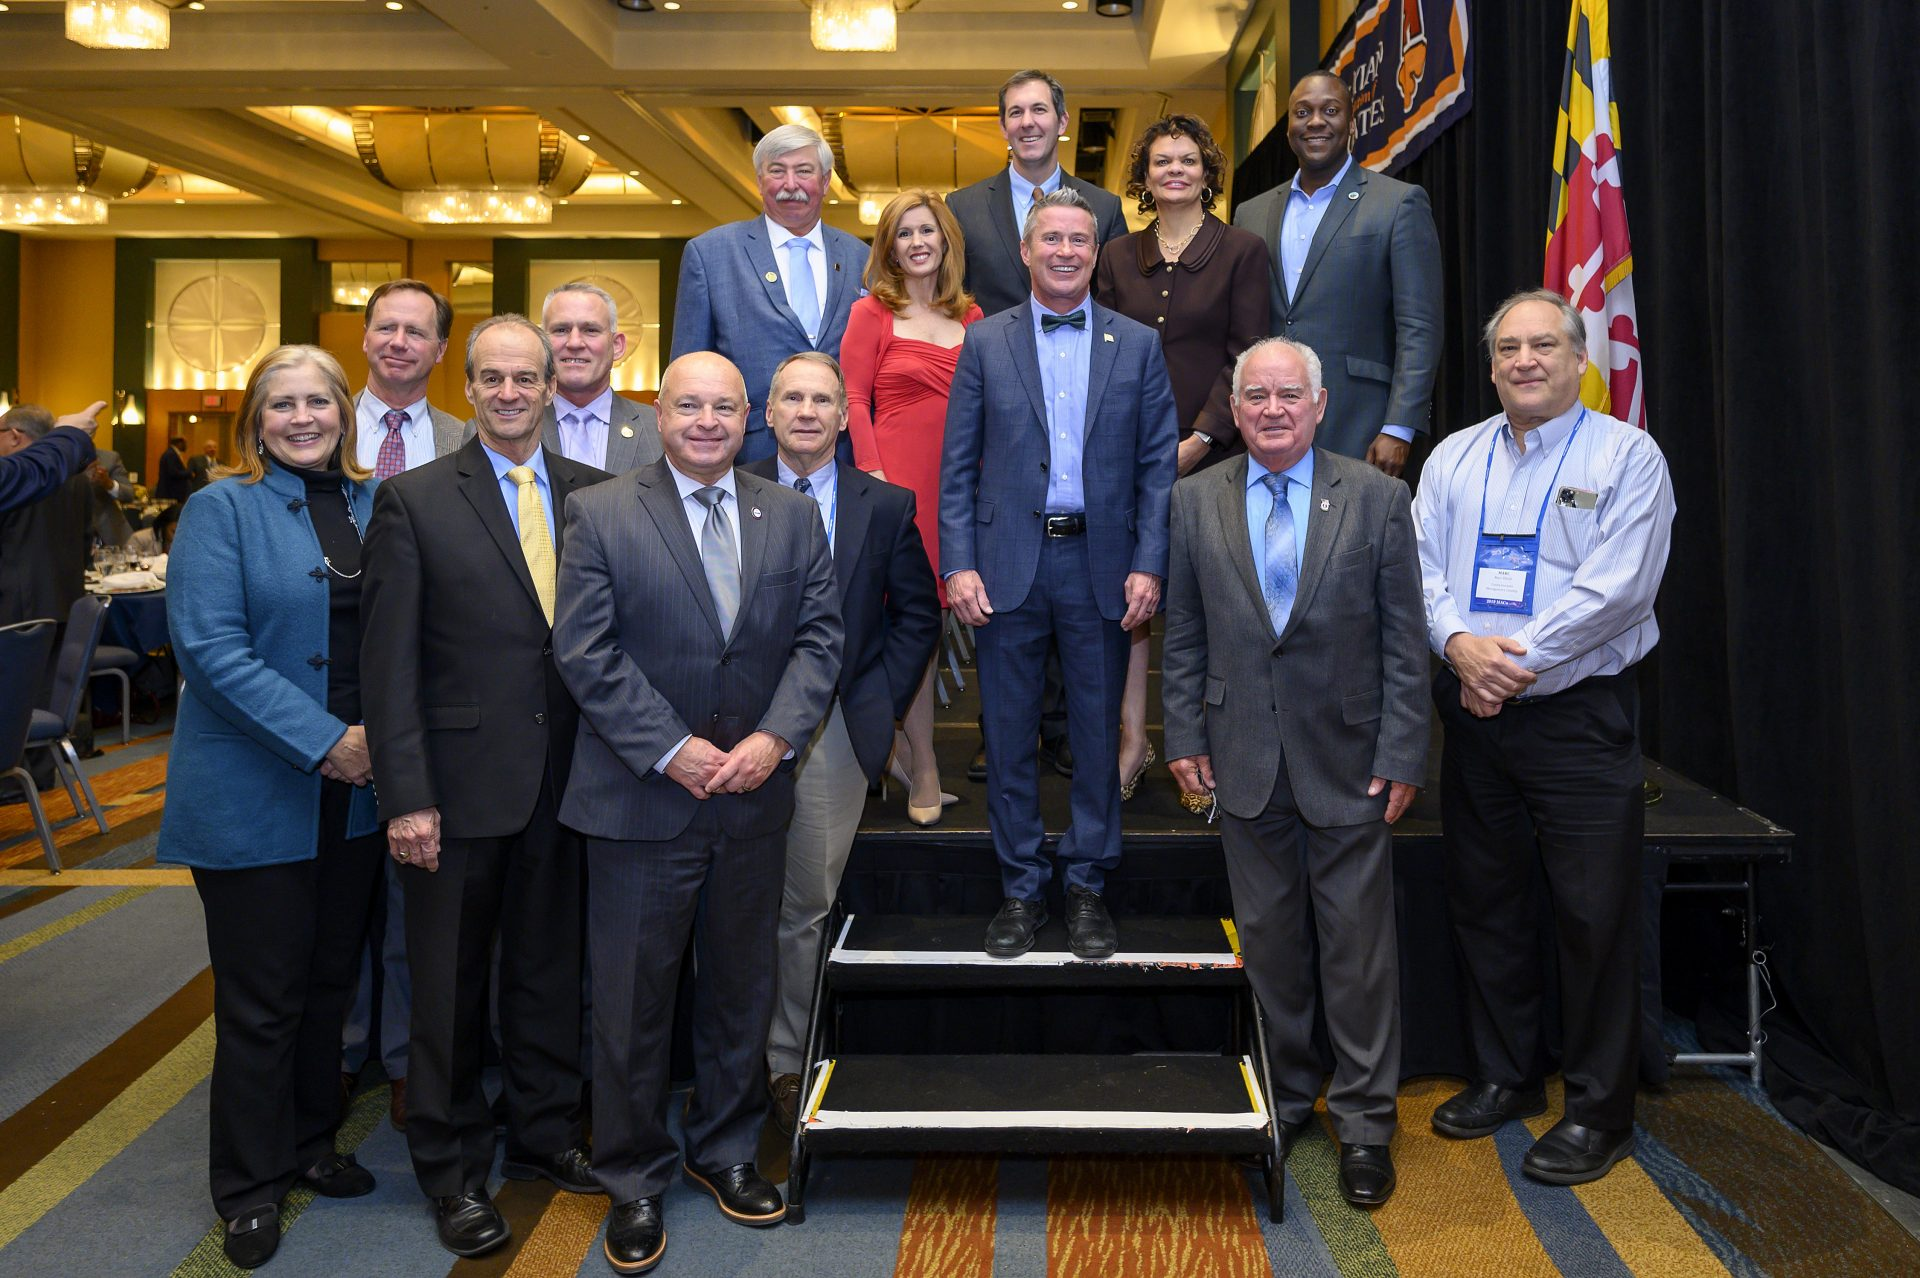 MACo Installs 2020 Board of Directors at Winter Conference